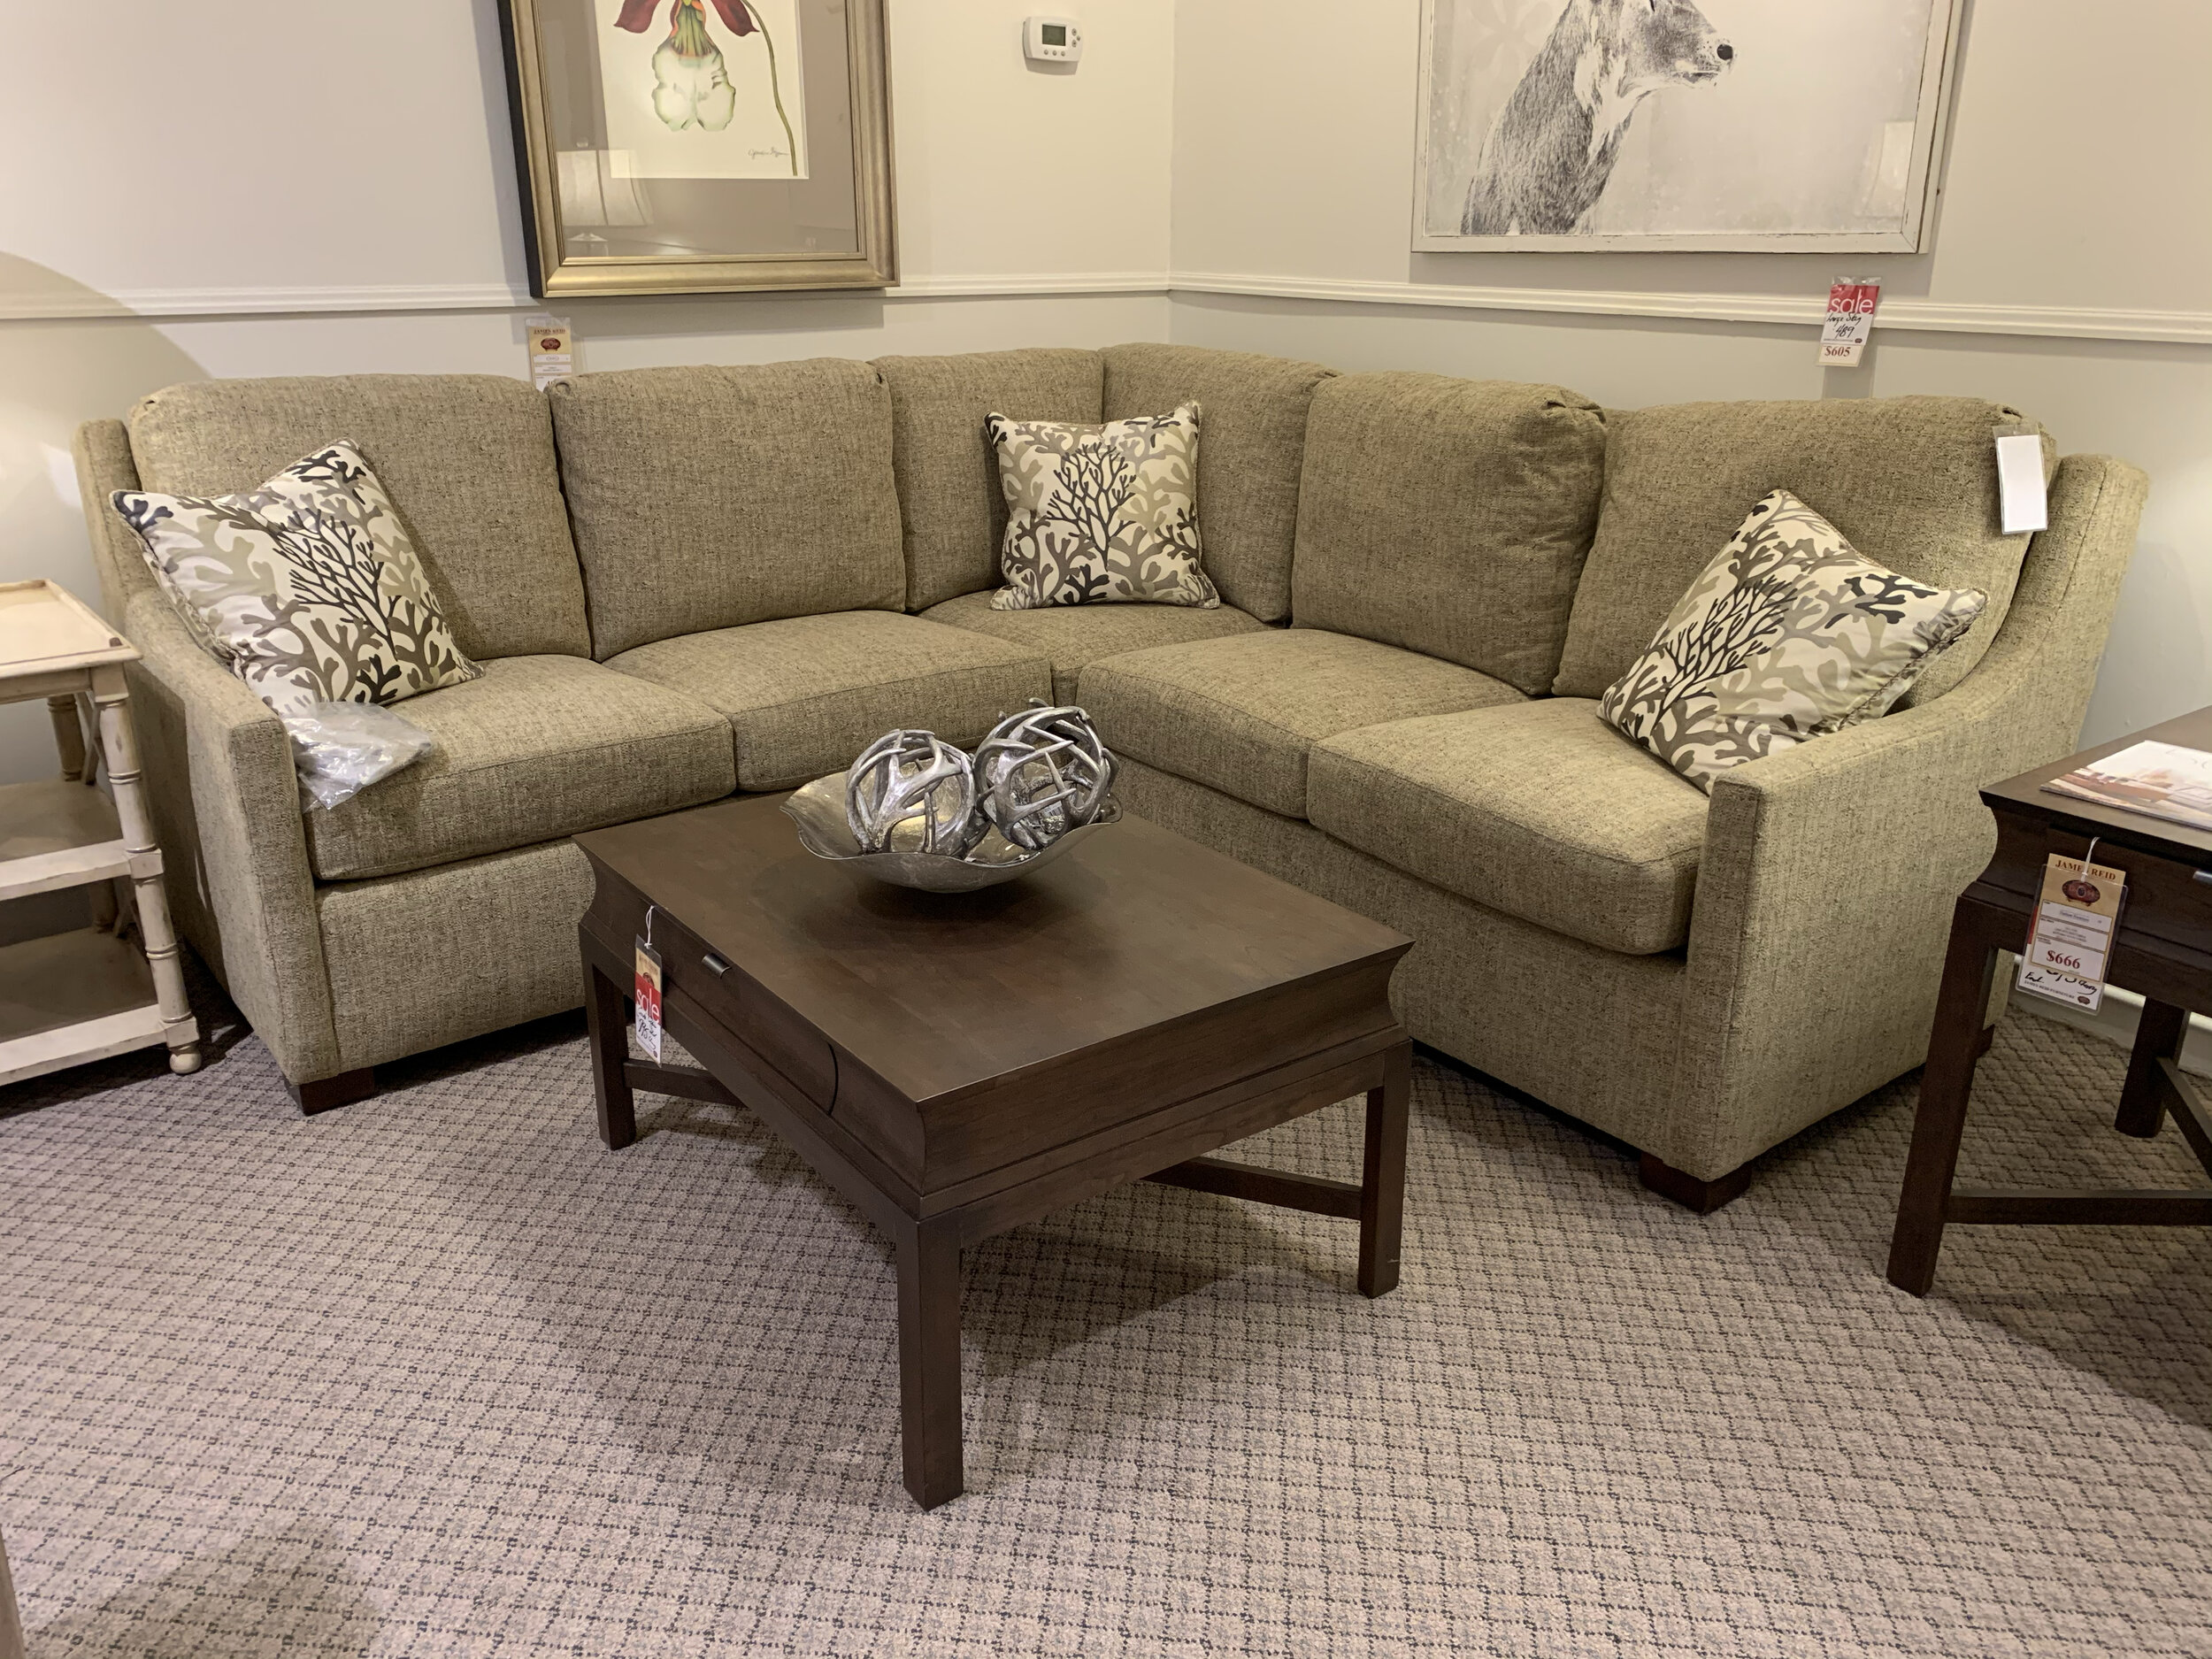 Stickley Sectional $6279.00 -